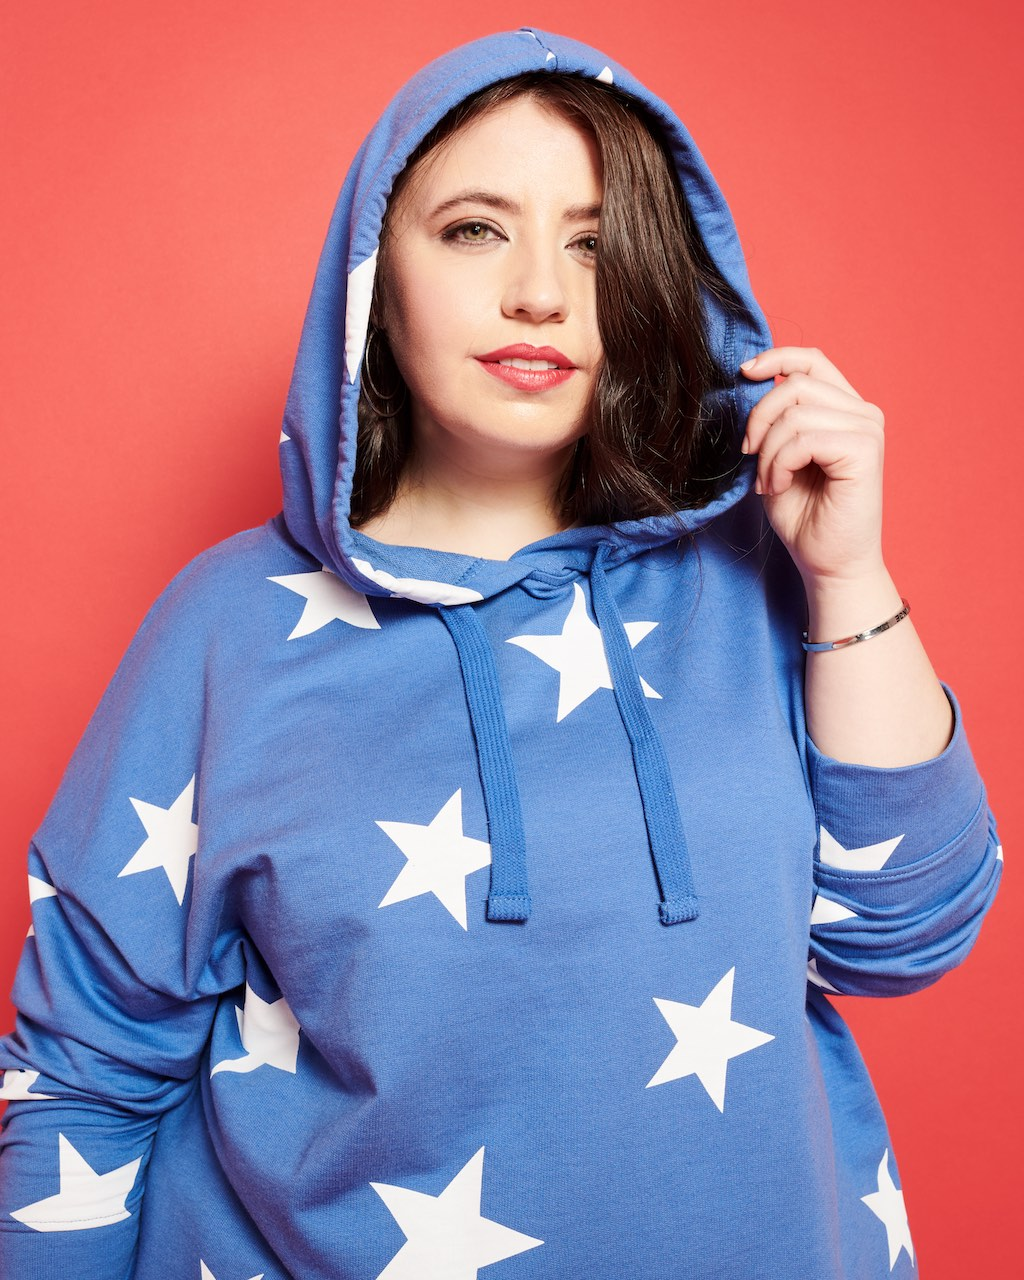 A woman wearing a hooded sweater.